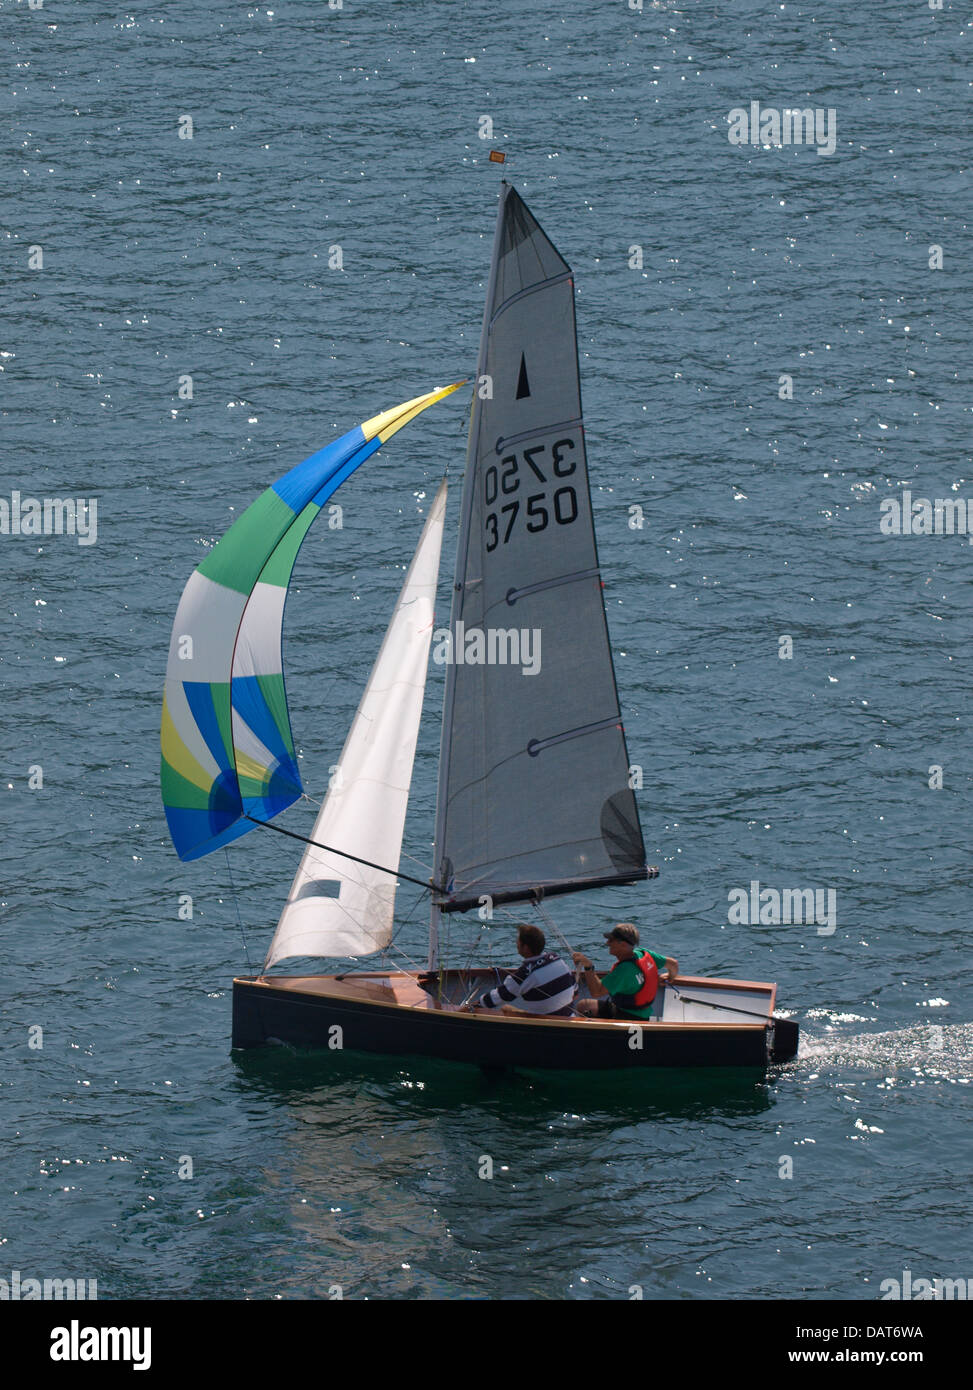 Small sail boat with spinnaker, Devon, UK 2013 - Stock Image